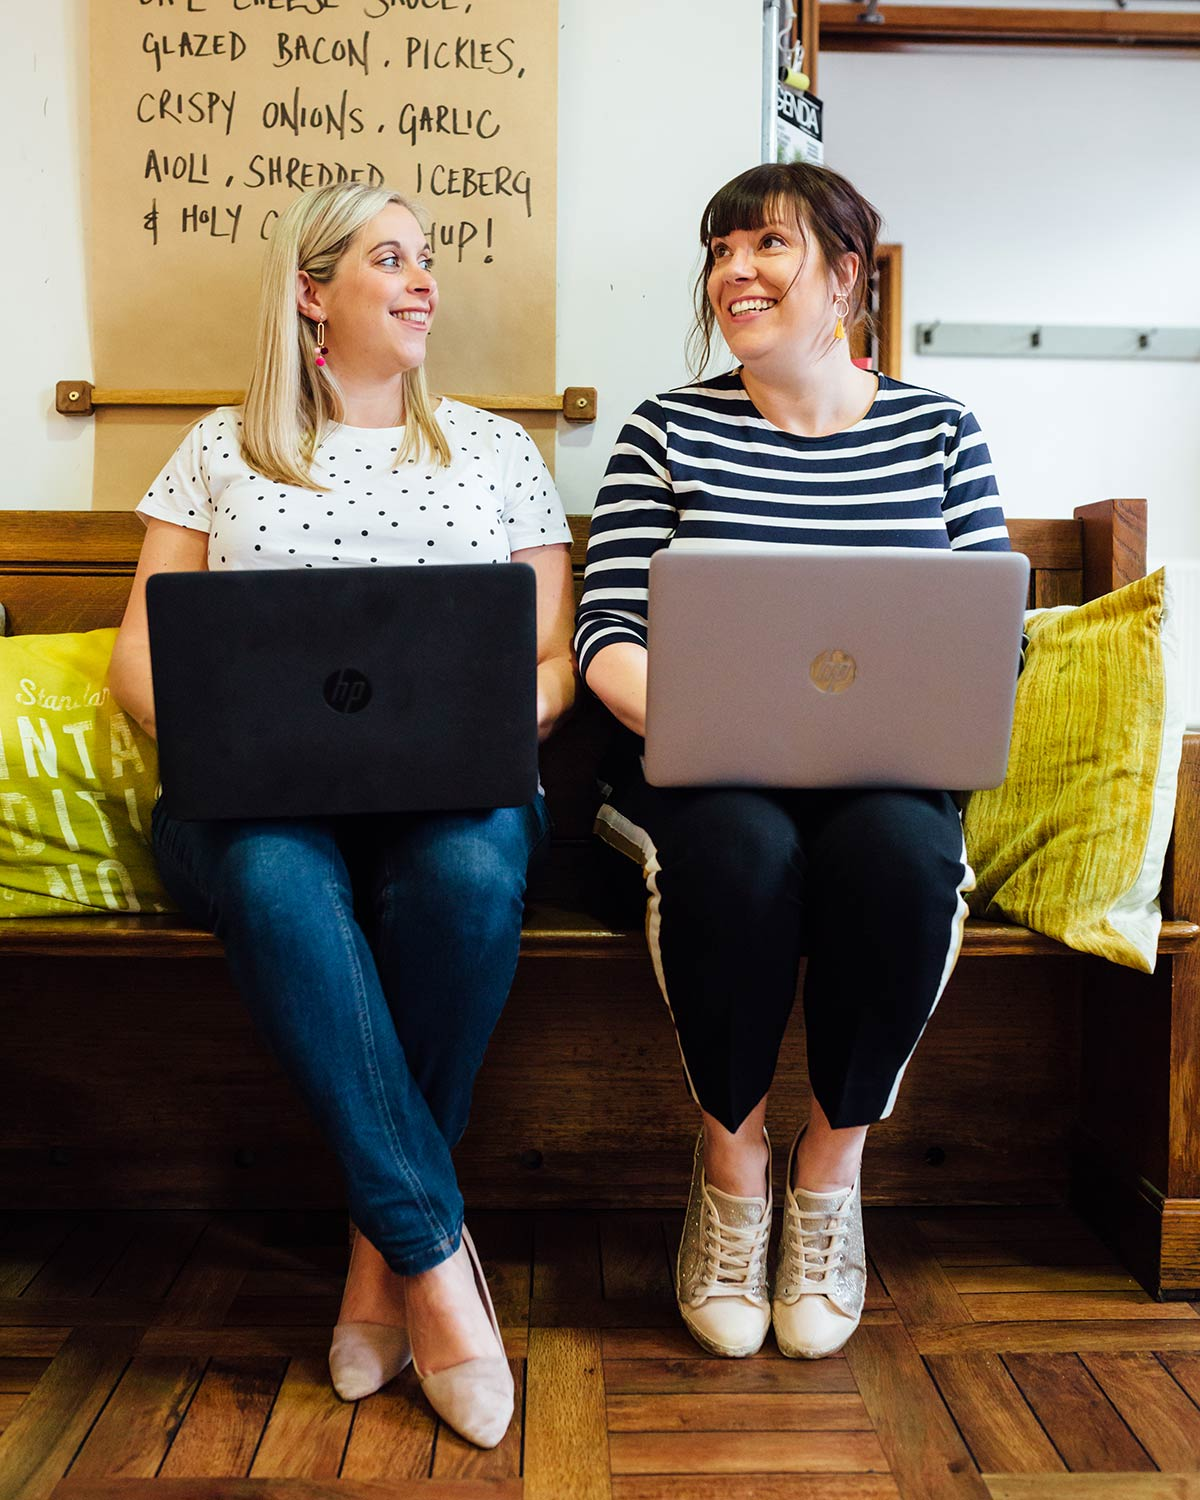 Sparke Club was founded in 2018 by Emma Clarke and Hayley Spencer. Together we have over 35 years experience working with products, development, branding and marketing. We've worked for big companies and small, mainly specialising in food. We have worked on products that have been sold in some pretty famous high street stores, in supermarkets, online and some of our fantastic products have even made the trip internationally. We love love love all things new. New products, New stores, New service, New everything and we're always on the lookout for new ways of doing things. Especially ways that challenge the status quo (Nothing like a bit of boat rocking) and we never settle for doing things how they've always been done, just because thats how its always been.